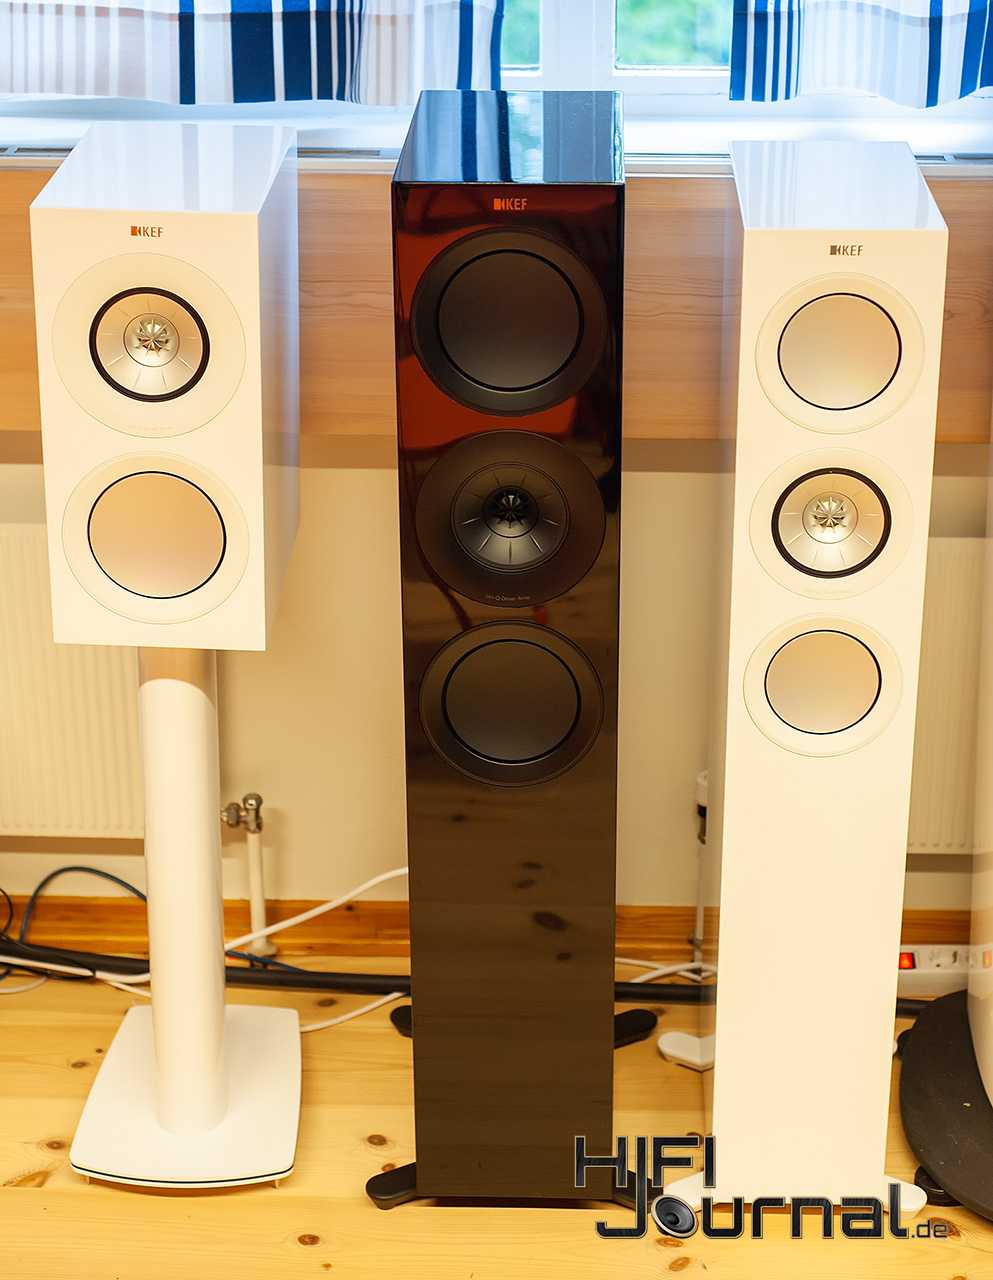 kef r serie 2018 im kurzcheck hifi journal results from 2. Black Bedroom Furniture Sets. Home Design Ideas